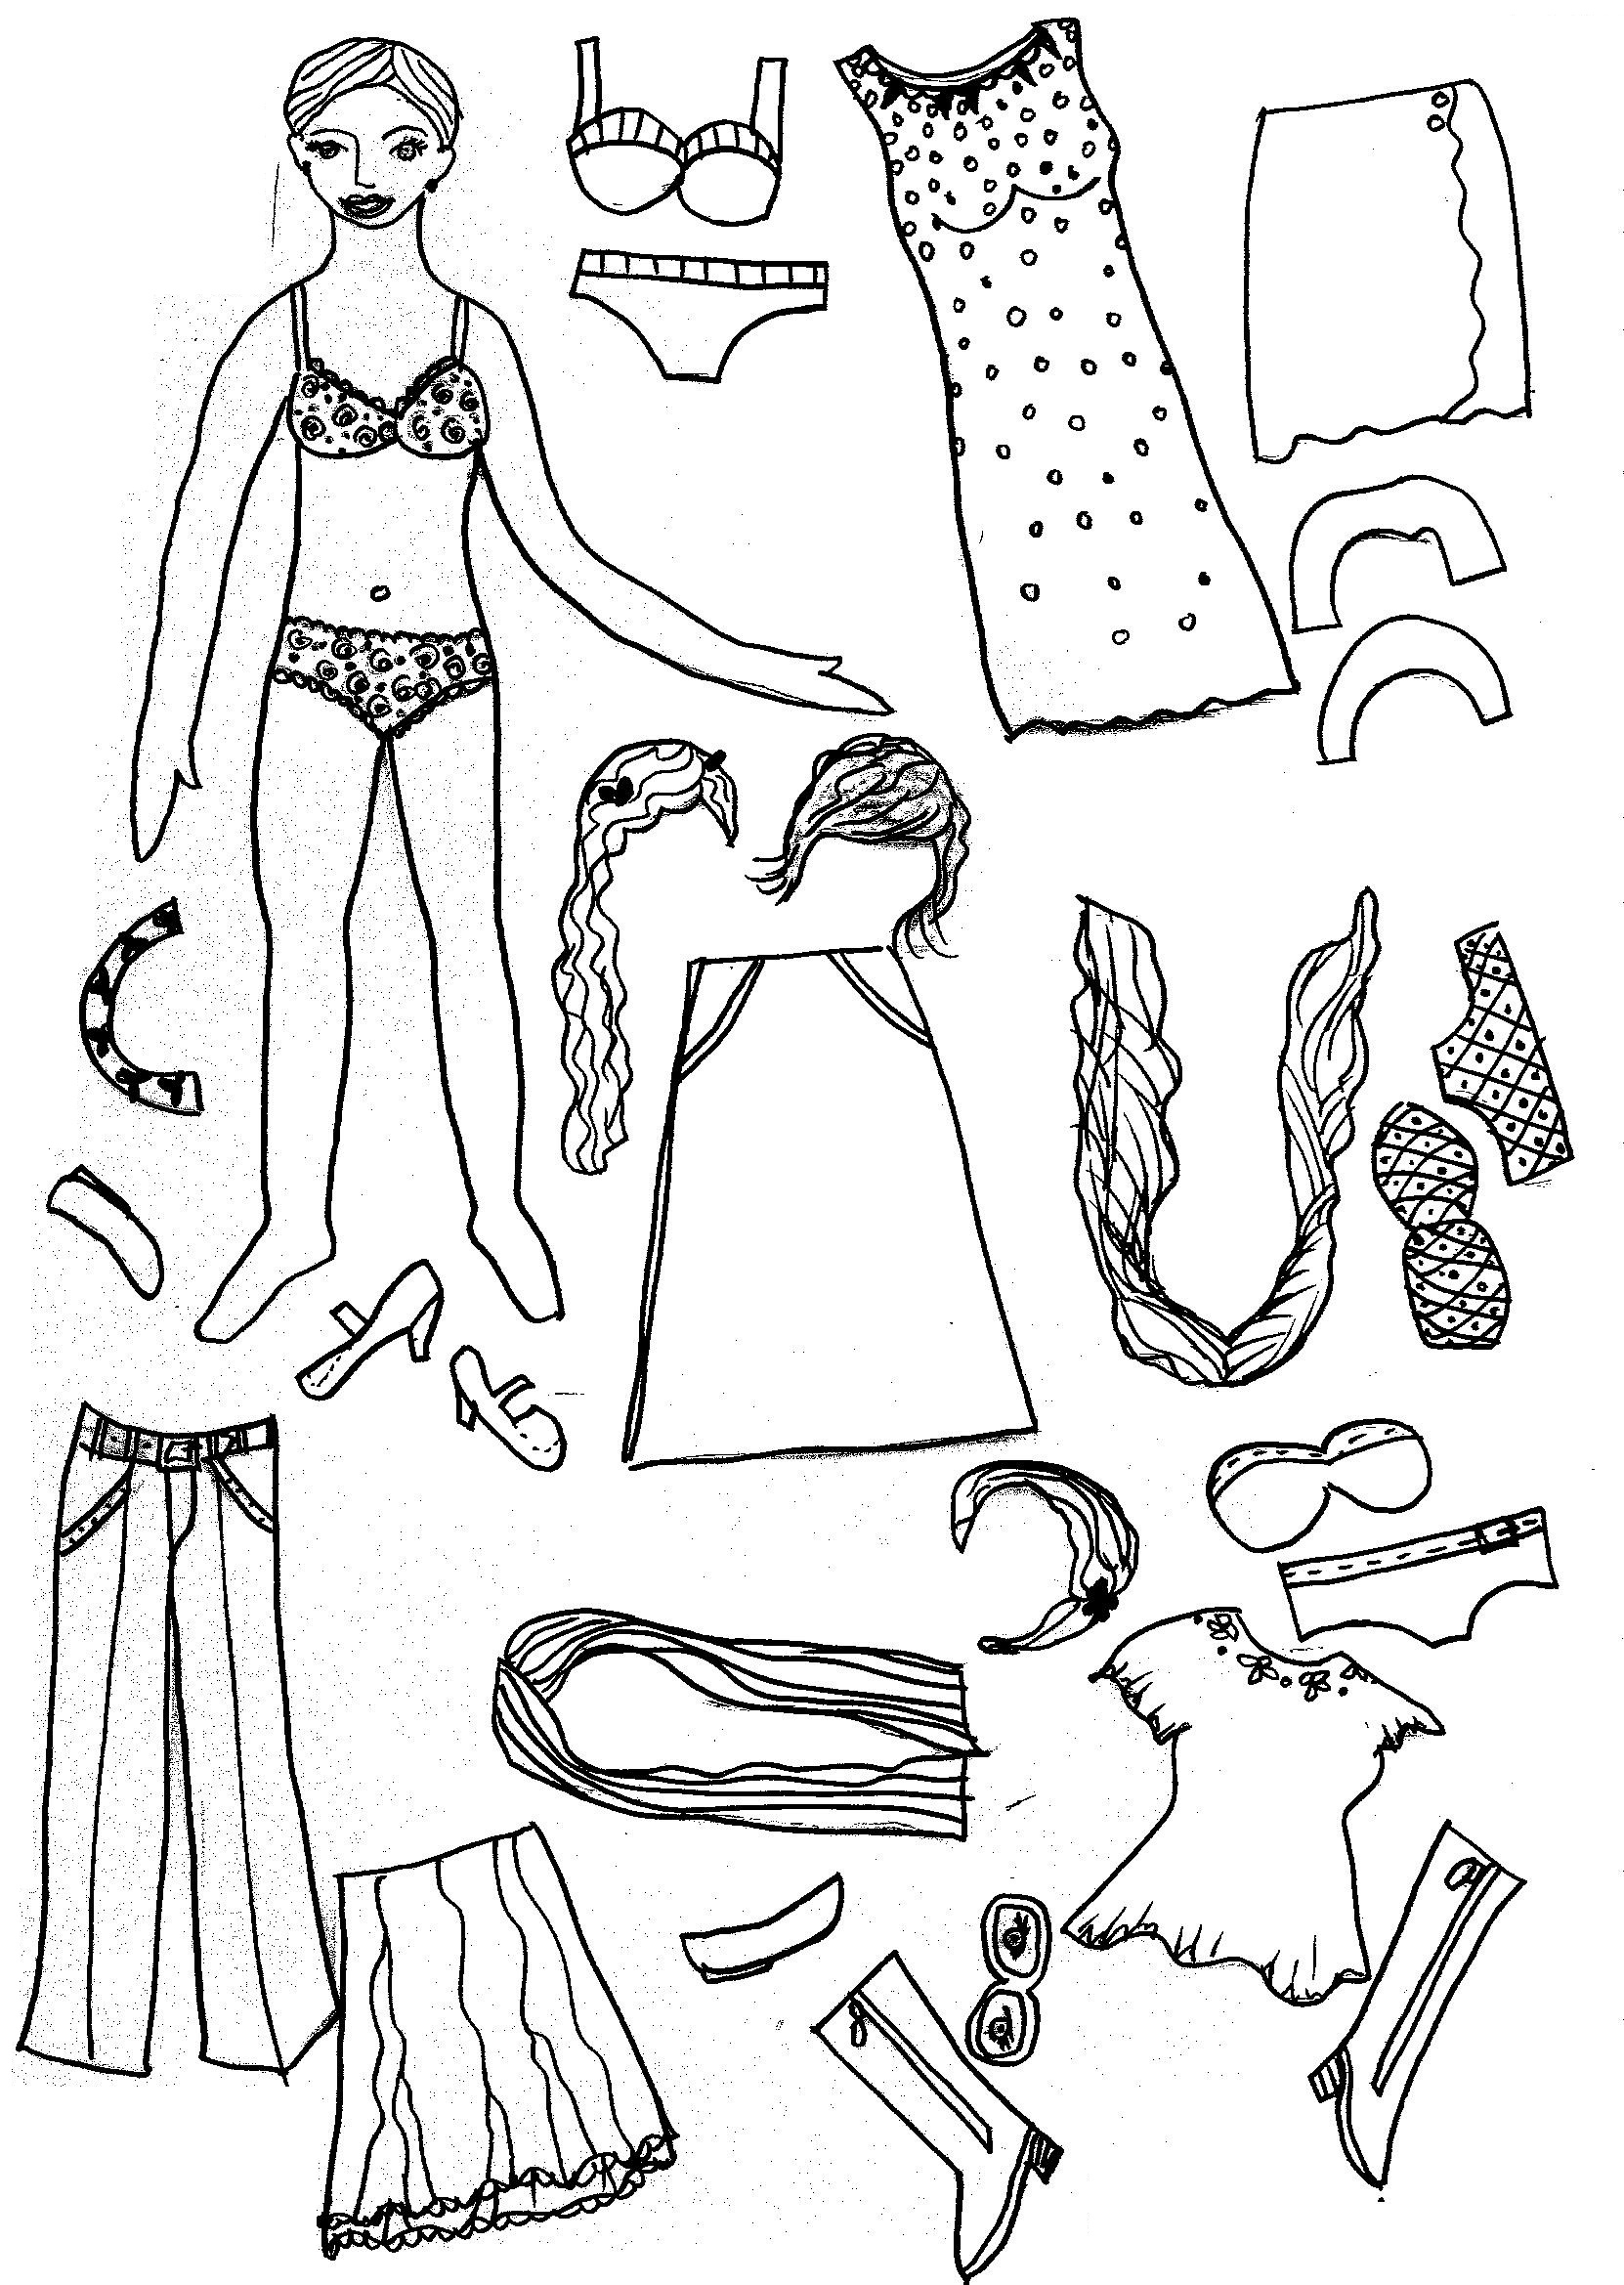 Blank Female Costume Templates Coloring Pages